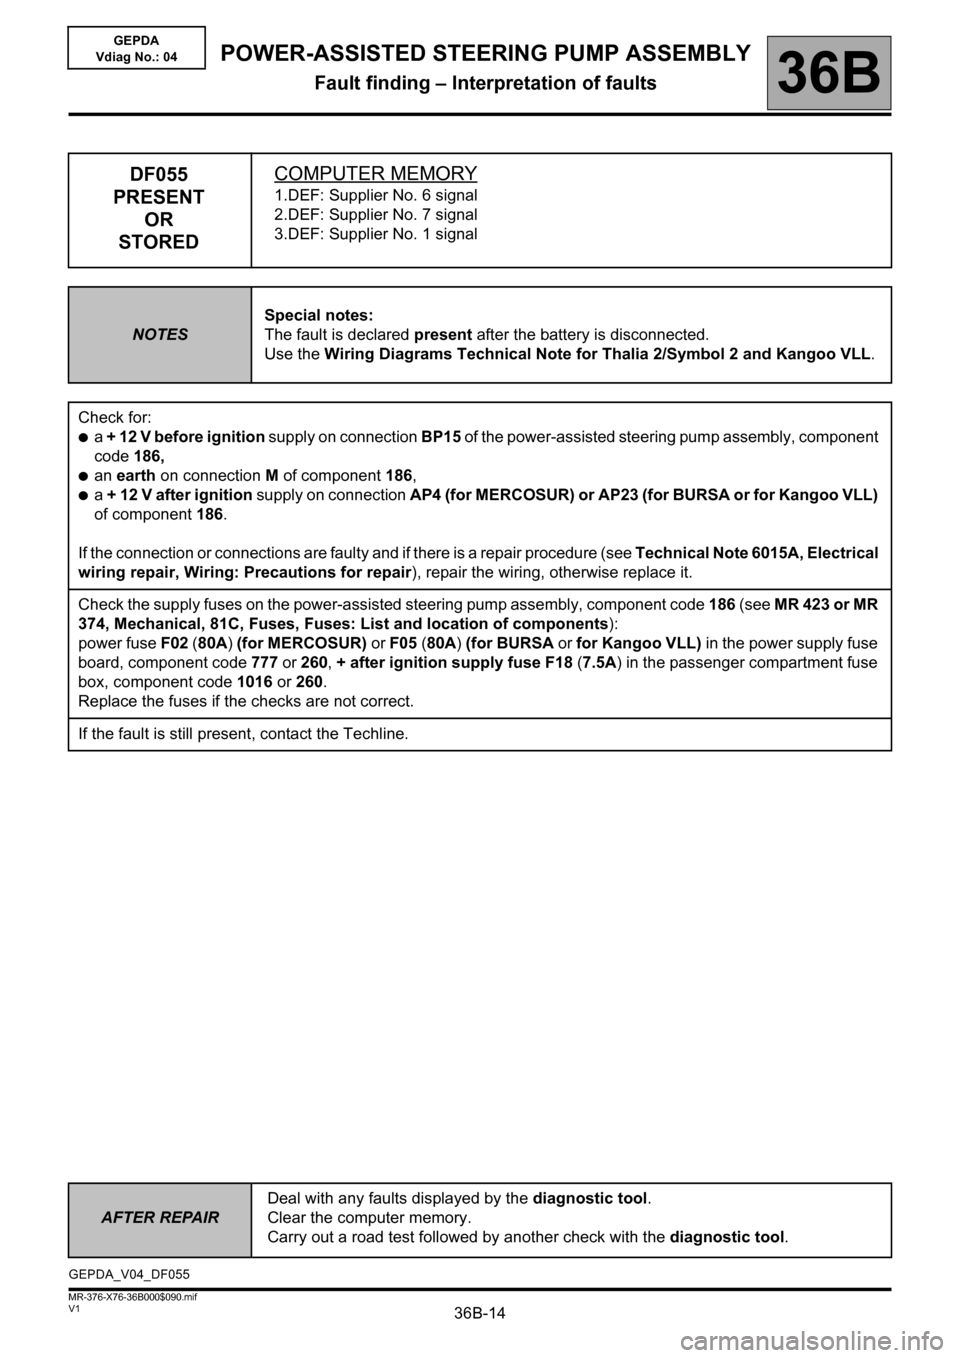 RENAULT KANGOO 2013 X61 / 2.G Power Steering Pump Assembly Workshop Manual, Page 14